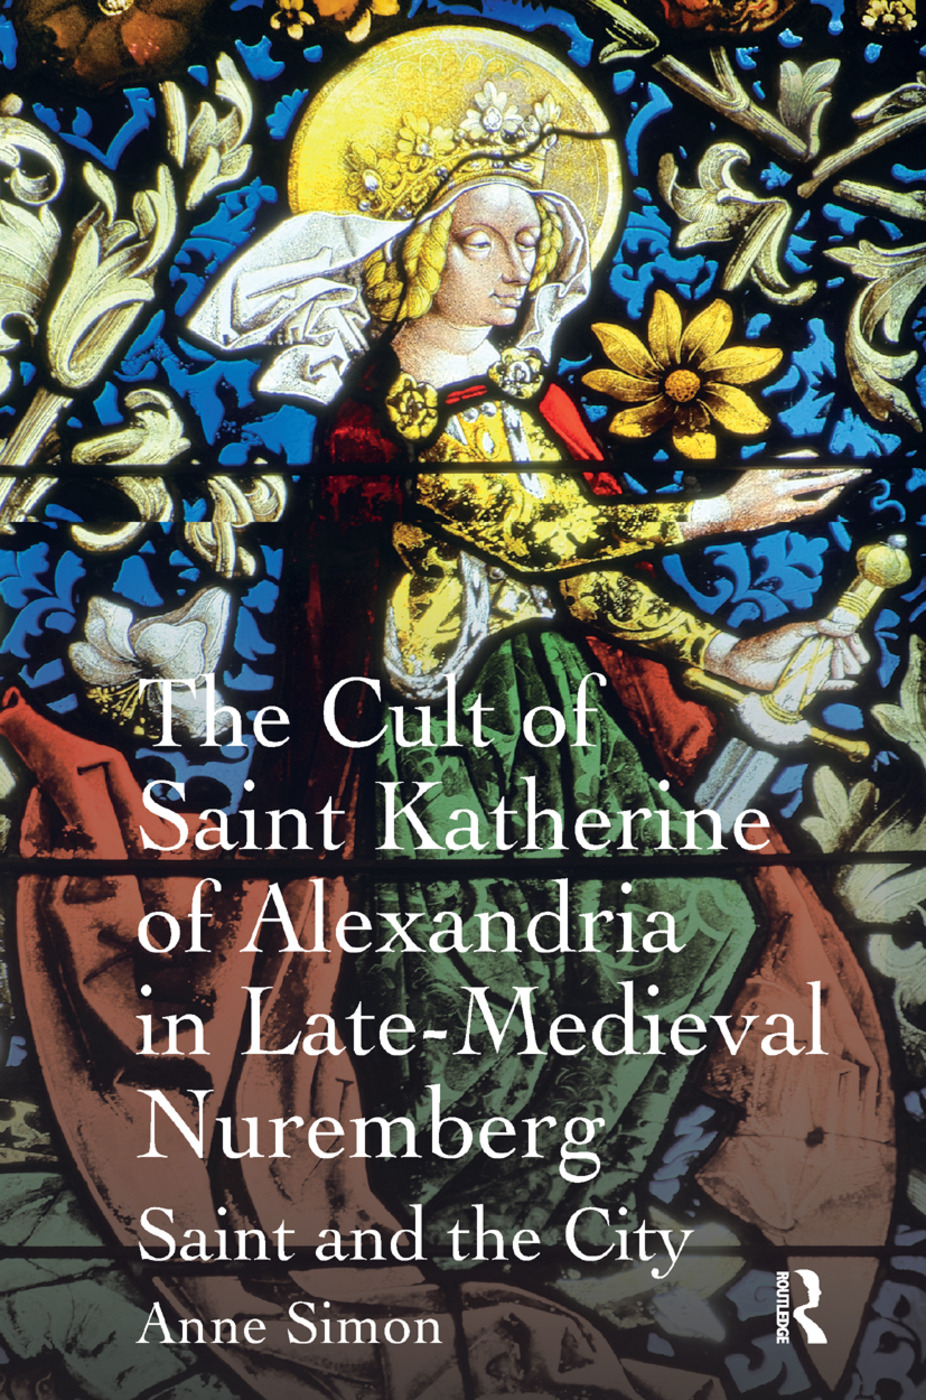 The Cult of Saint Katherine of Alexandria in Late-Medieval Nuremberg: Saint and the City, 1st Edition (Paperback) book cover